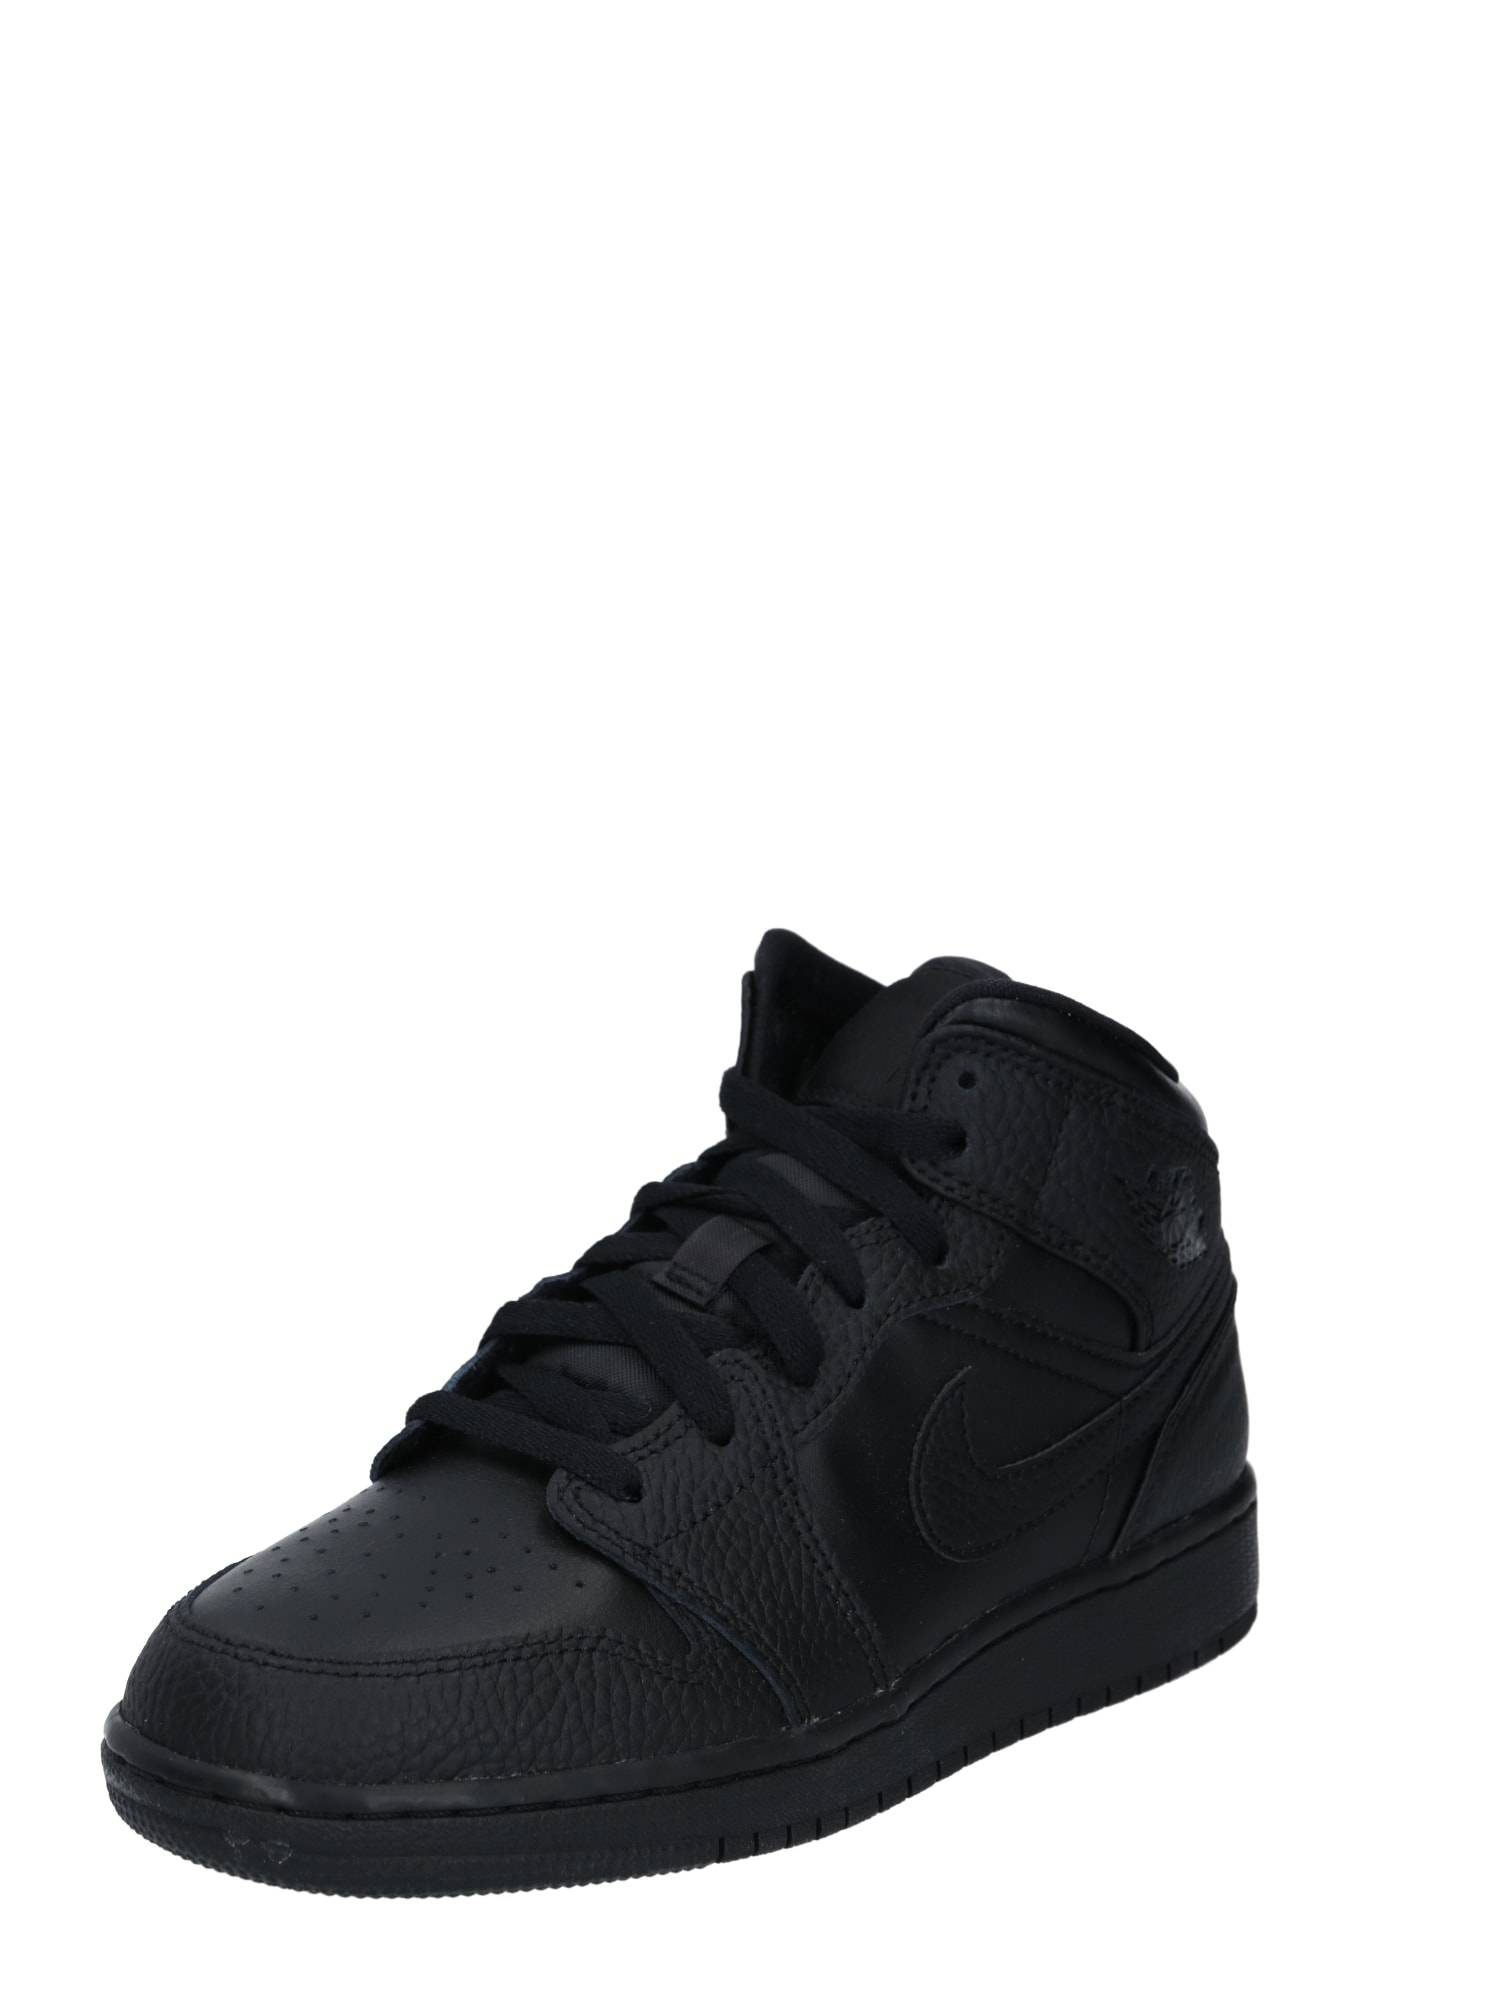 Jordan Baskets 'Air Jordan'  - Noir - Taille: 4Y - boy